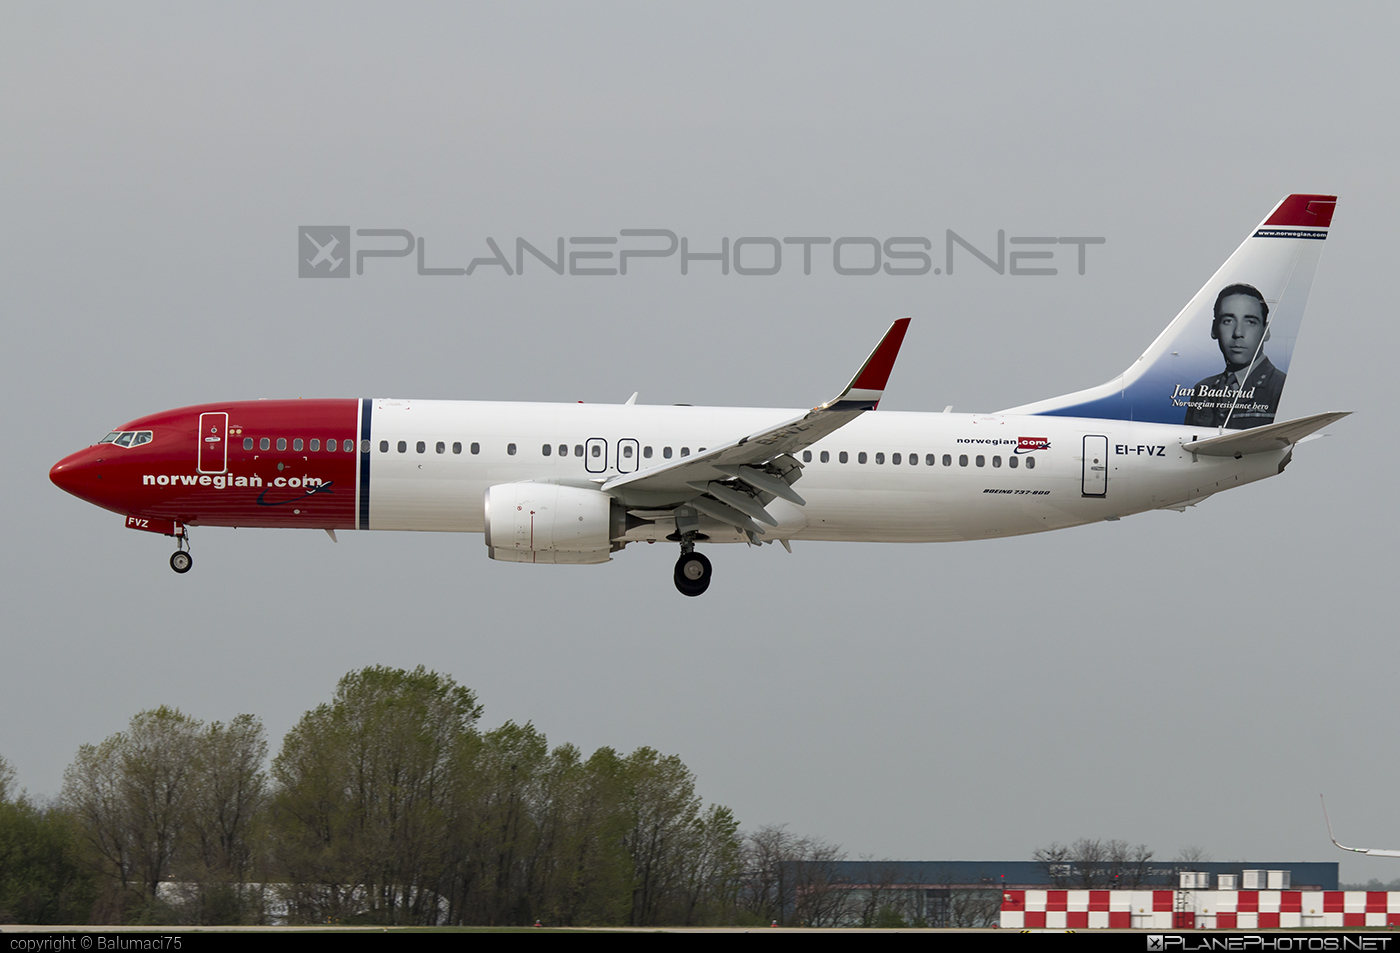 Boeing 737-800 - EI-FVZ operated by Norwegian Air International #b737 #b737nextgen #b737ng #boeing #boeing737 #norwegian #norwegianair #norwegianairinternational